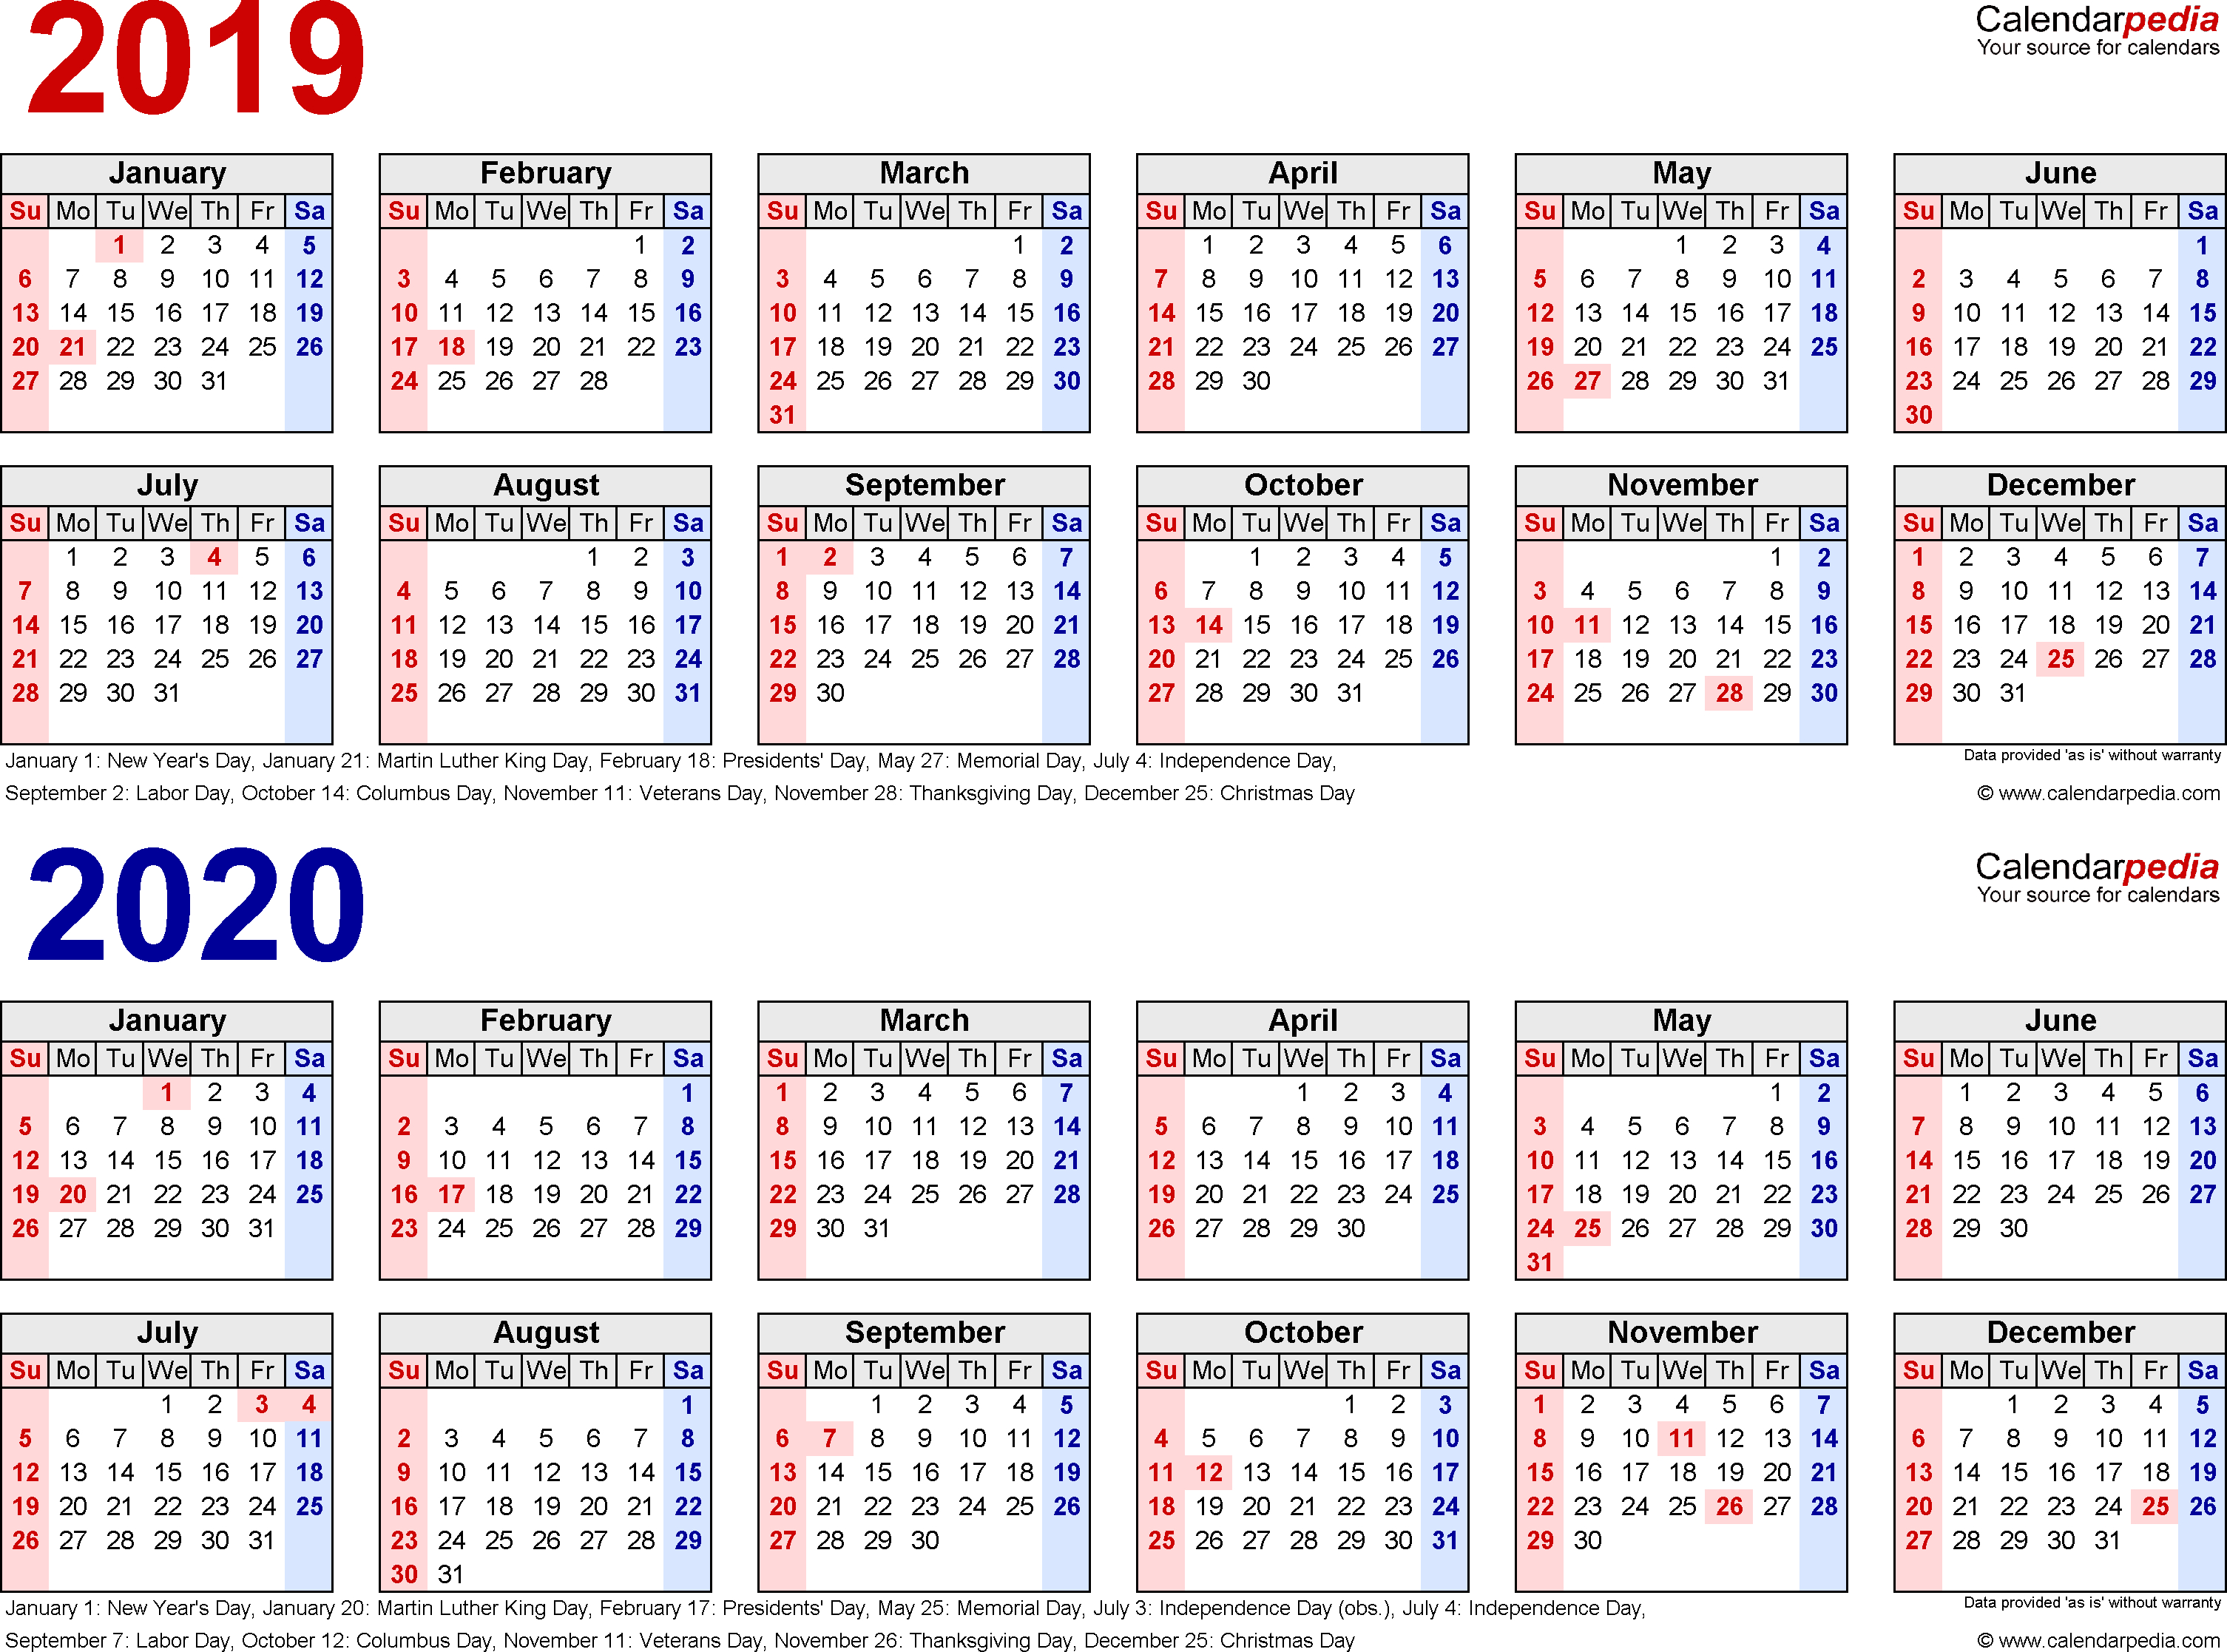 2019-2020 Calendar - Free Printable Two-Year Word Calendars in Calendar For Rest Of 2019 And 2020